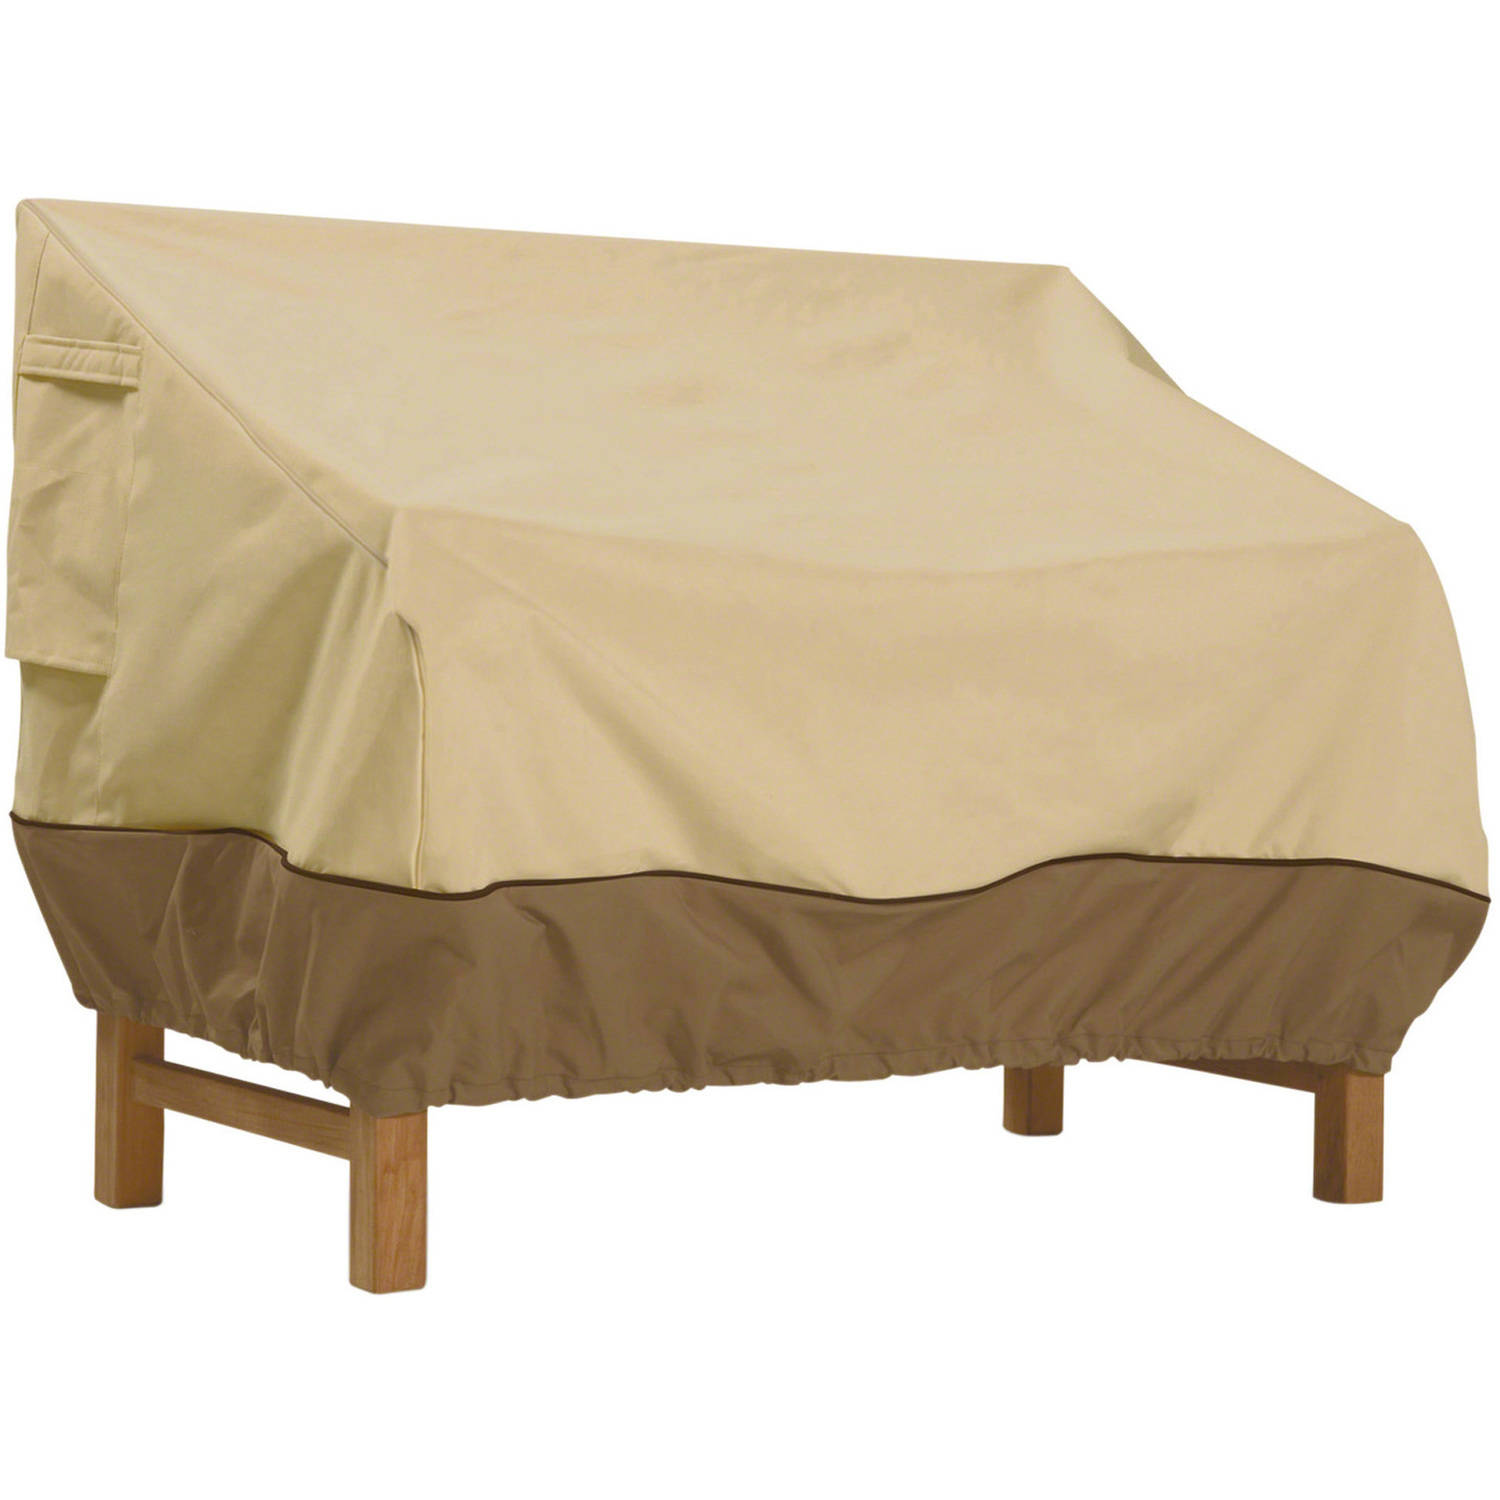 Classic Accessories Veranda Patio Bench And Loveseat Furniture Storage Cover,  Small, Fits Up To